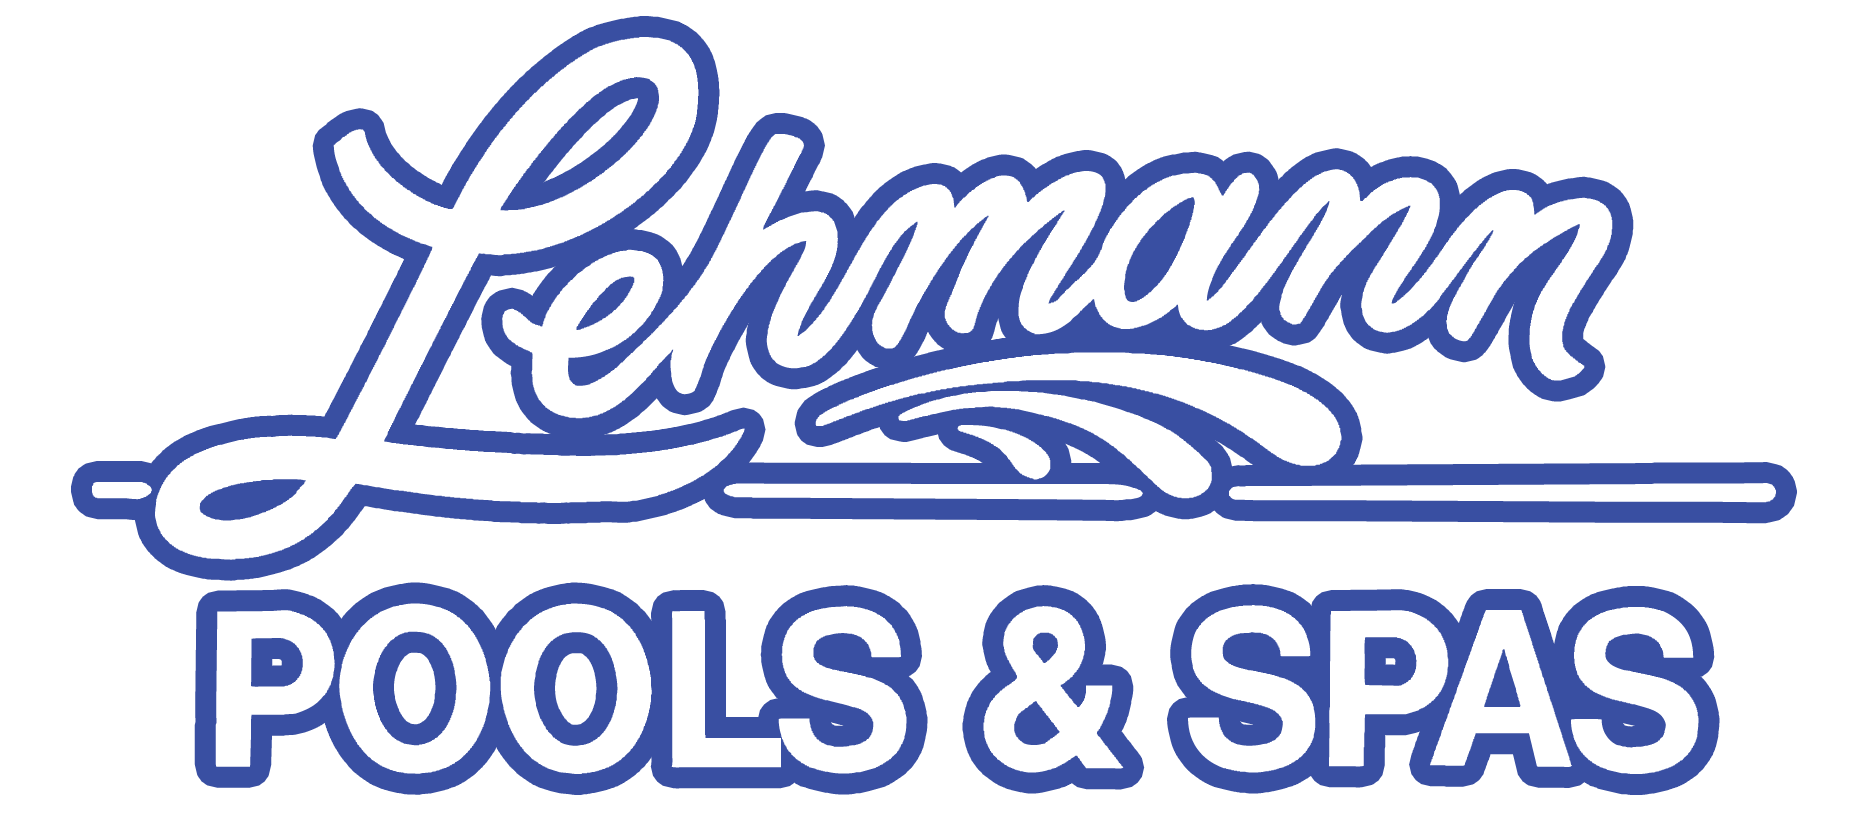 Lehmann Pools & Spas Logo